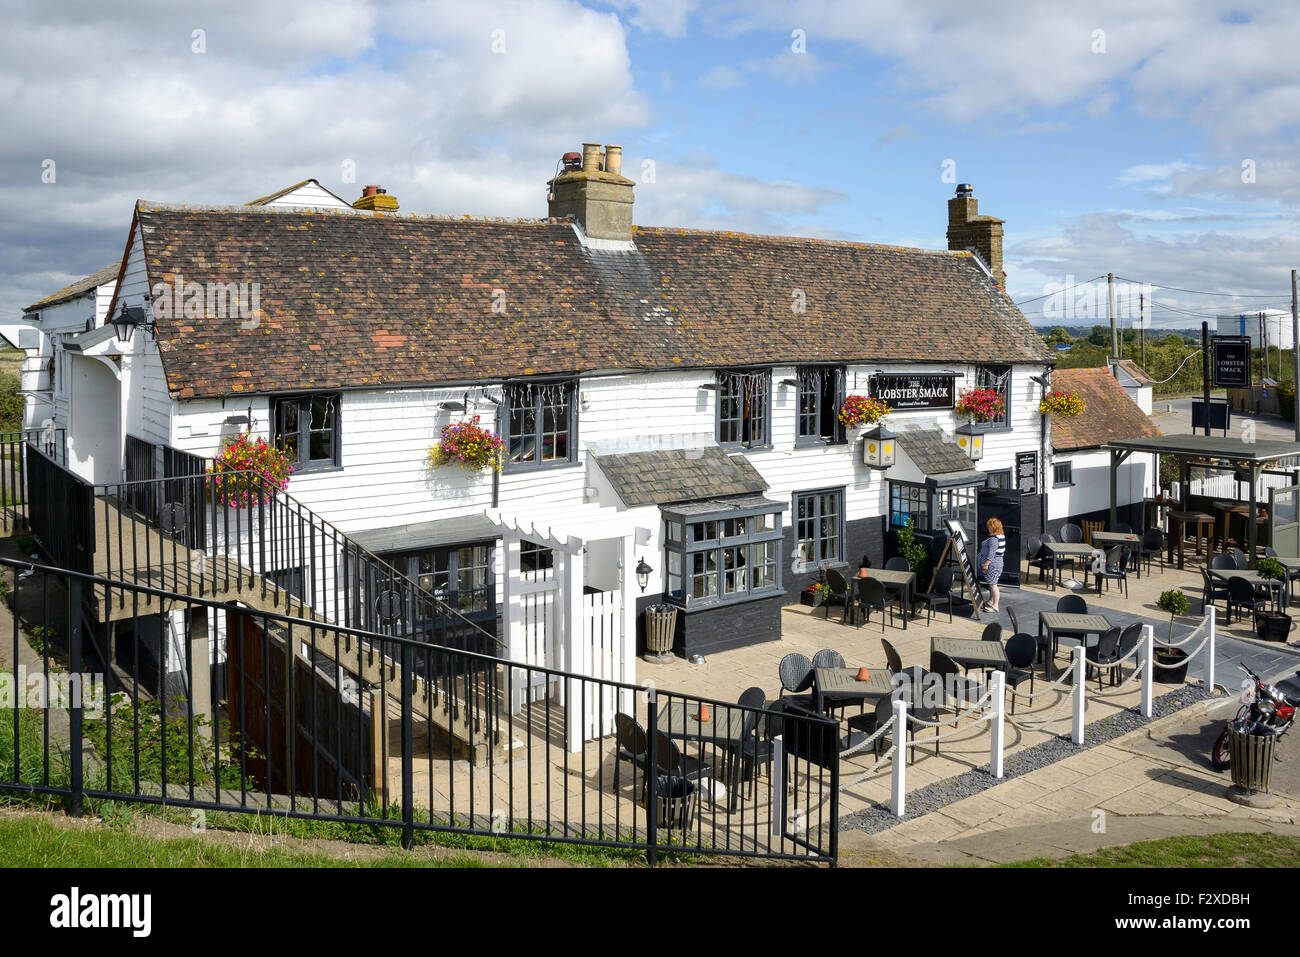 The Lobster Smack Pub, Haven Road, Canvey Island, Essex, England, United Kingdom - Stock Image